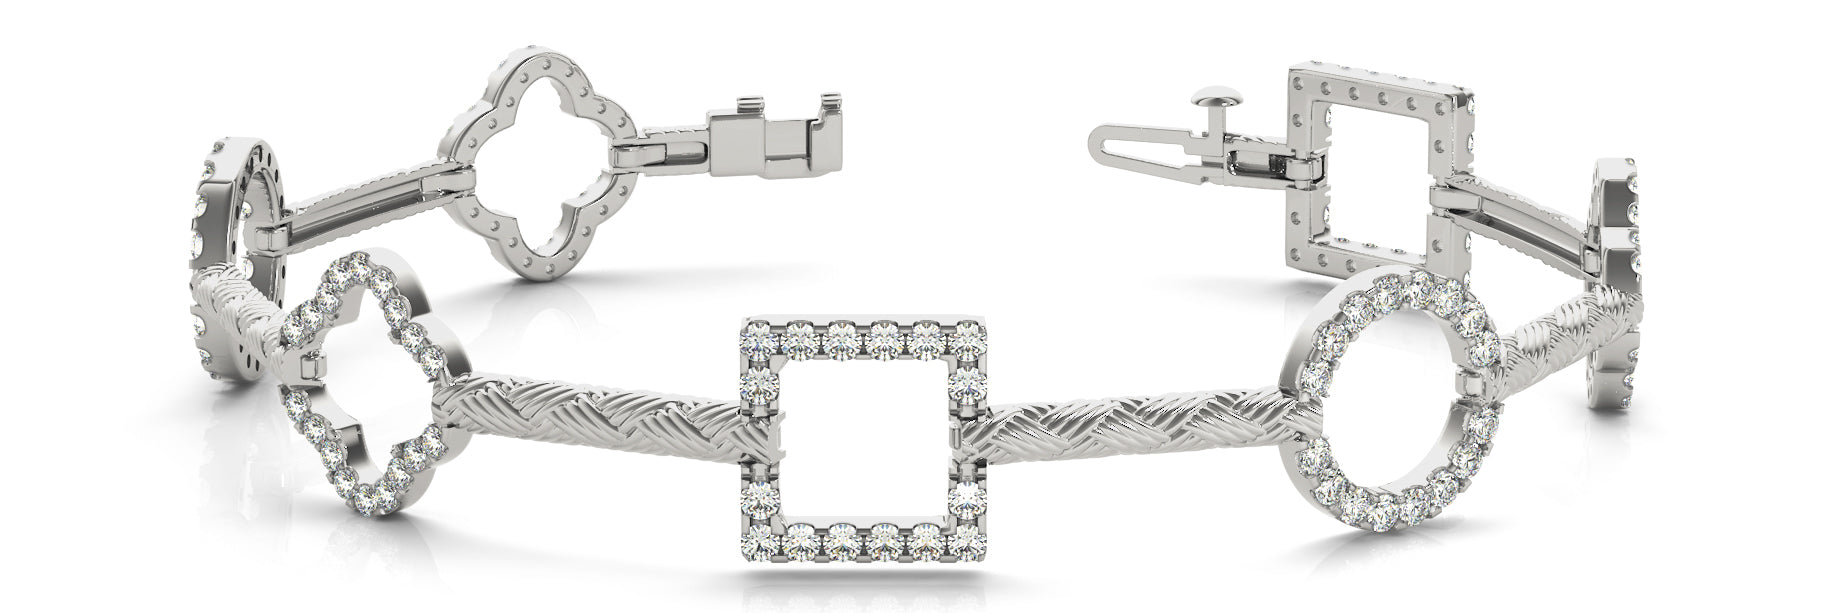 Fancy Diamond Bracelet Ladies 1.41ct tw - 14kt White Gold